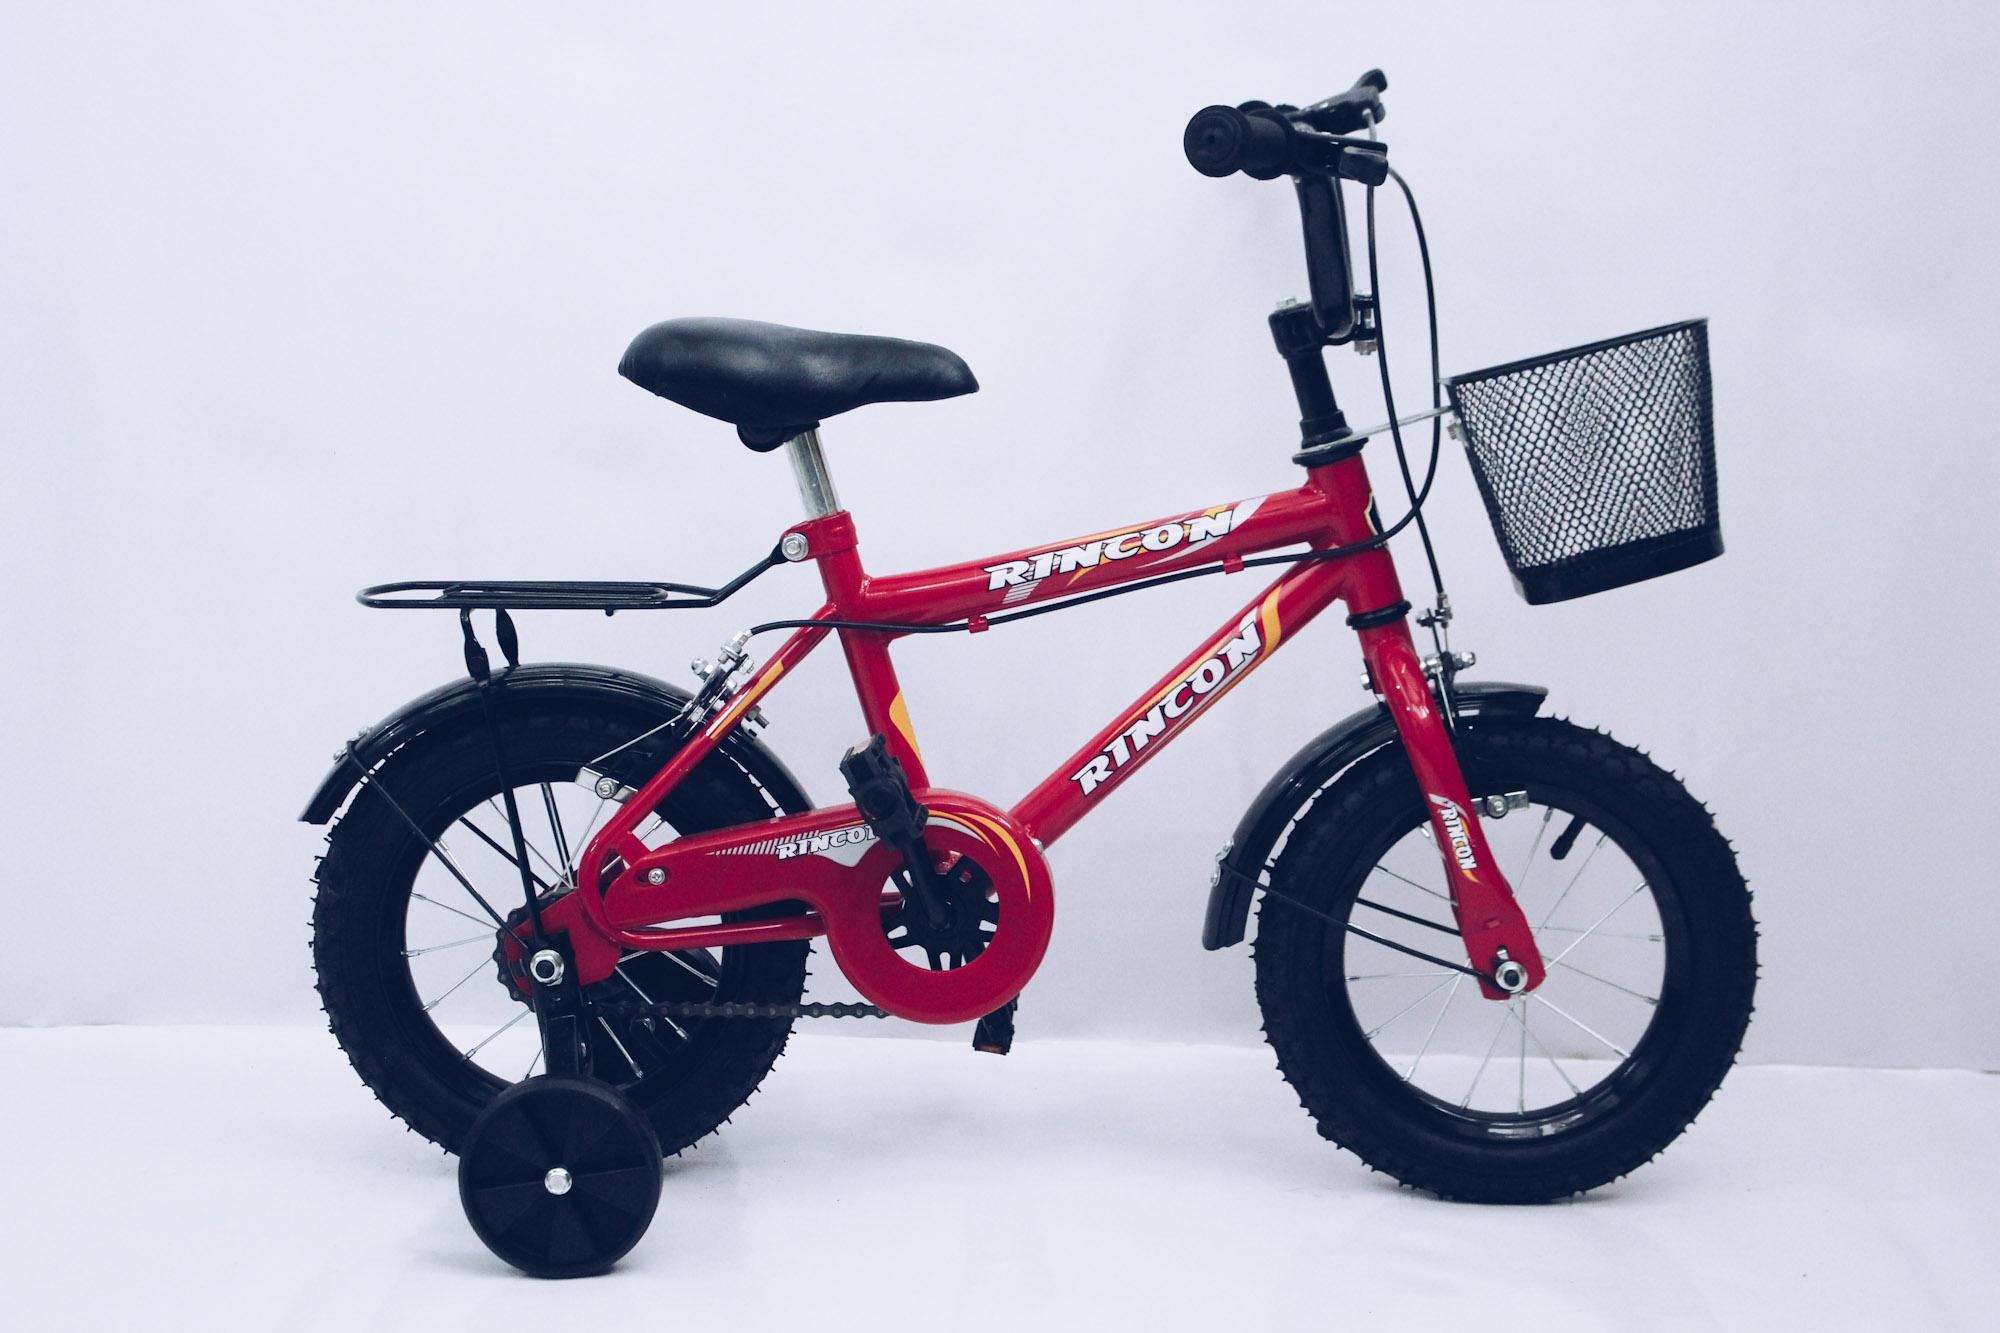 ce82ae36cb1 Kids Bikes for sale - Bicycles for Kids online brands